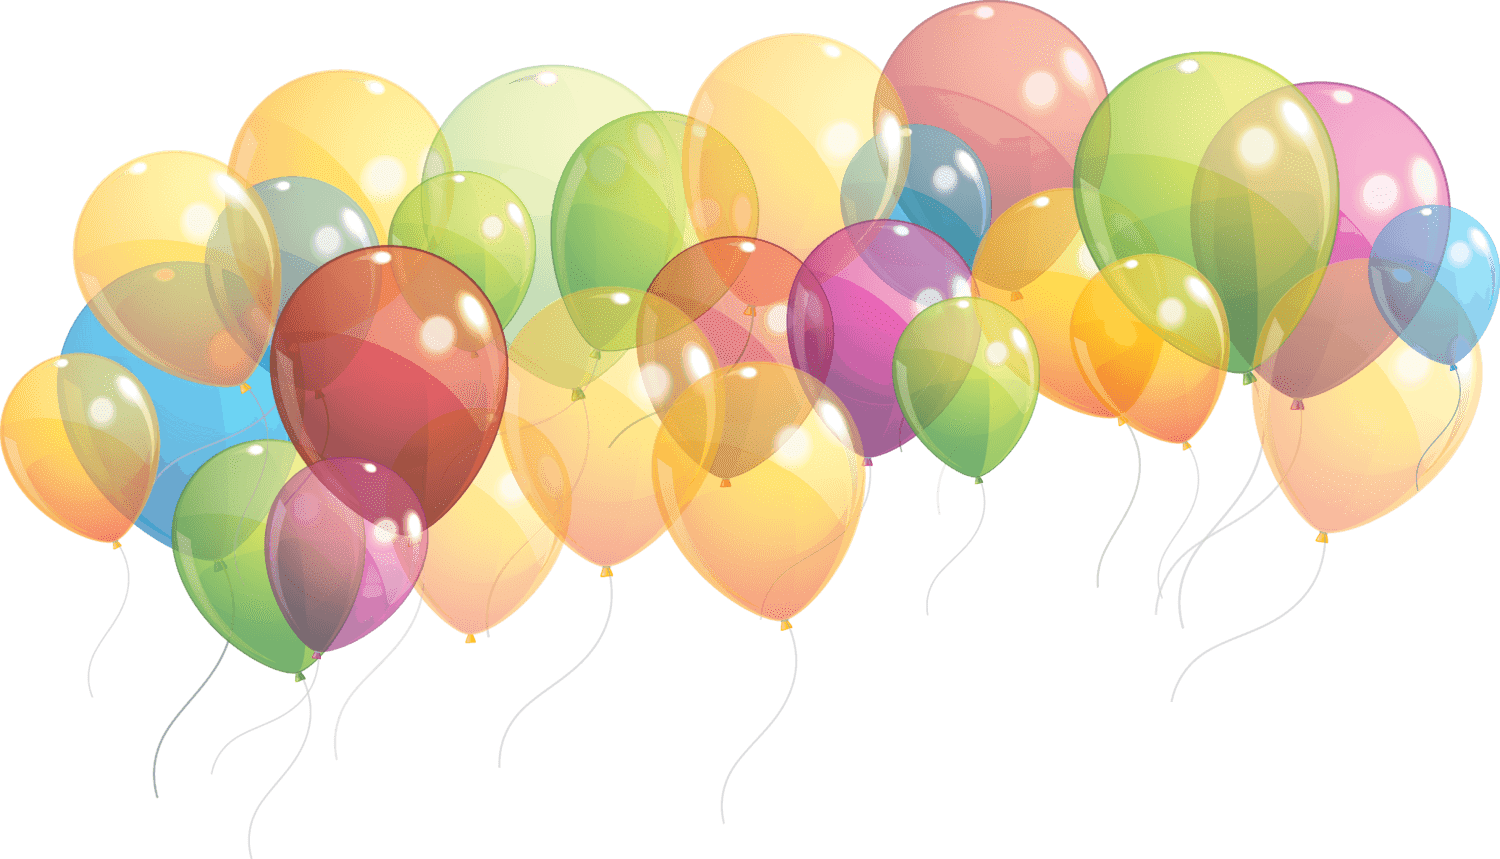 Balloon png transparent background. Group of balloons taking